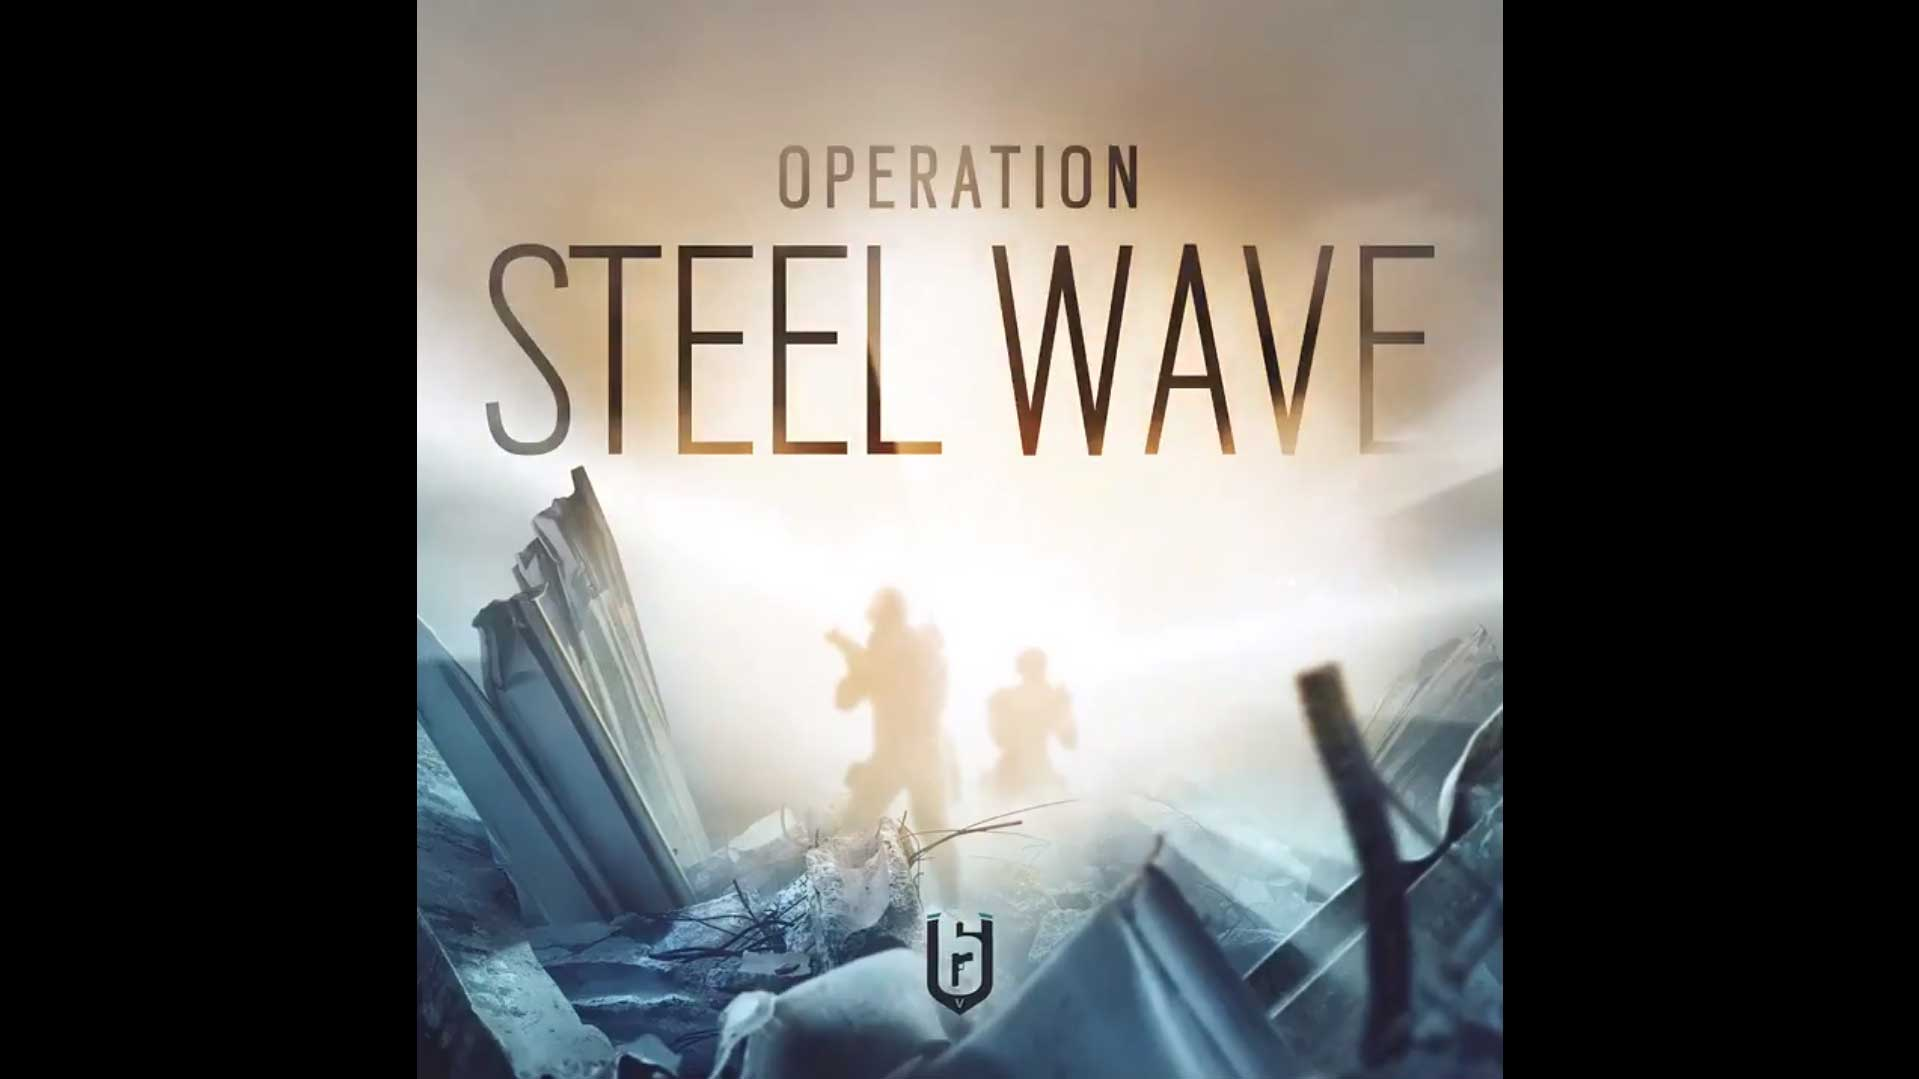 steel wave logo tw screen babt